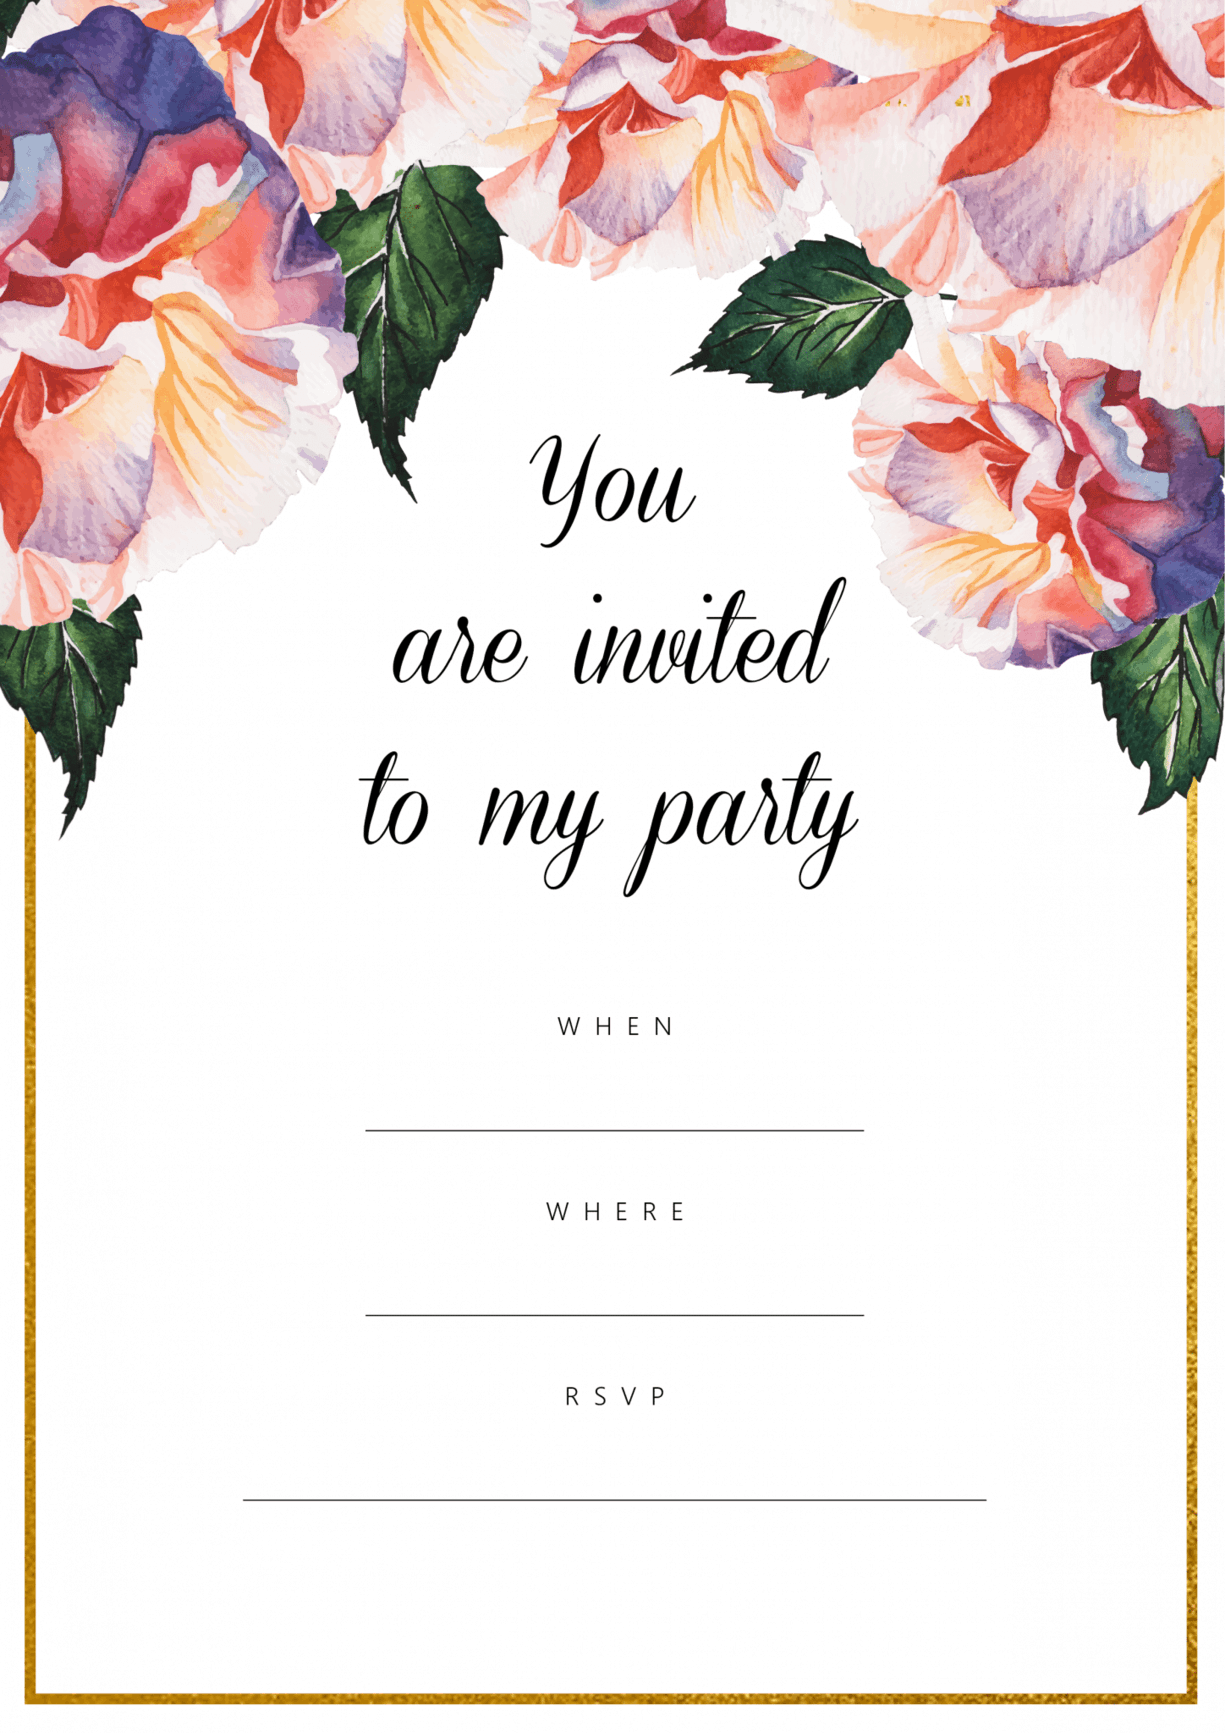 all free invitations